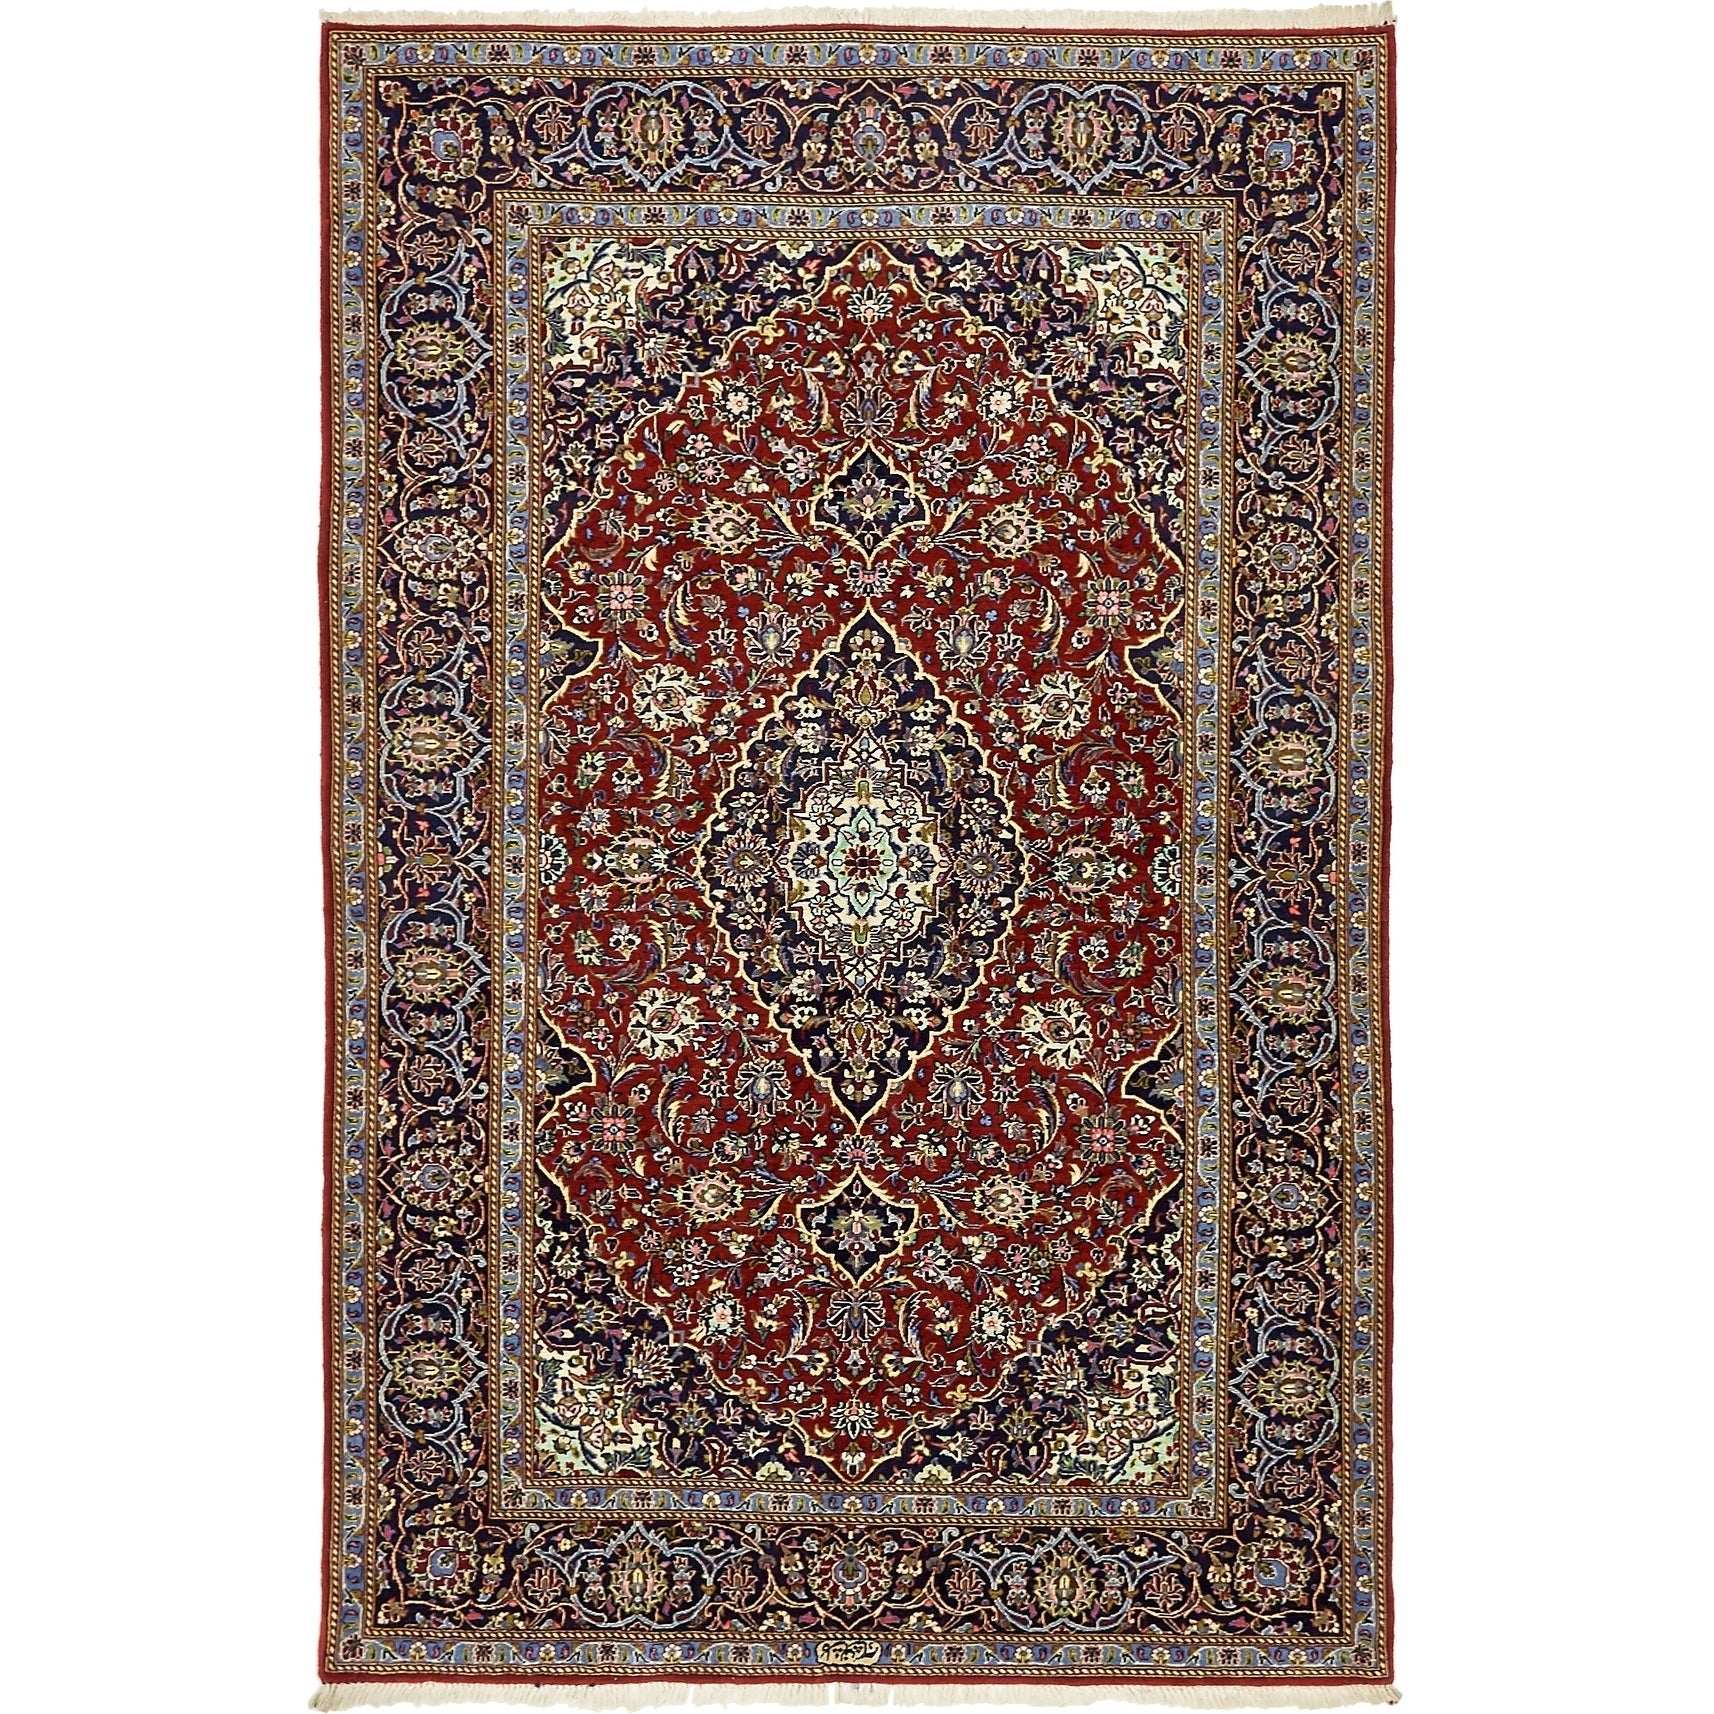 Hand Knotted Kashan Silk & Wool Area Rug - 4' 8 x 7' 2 (Red - 4' 8 x 7' 2)